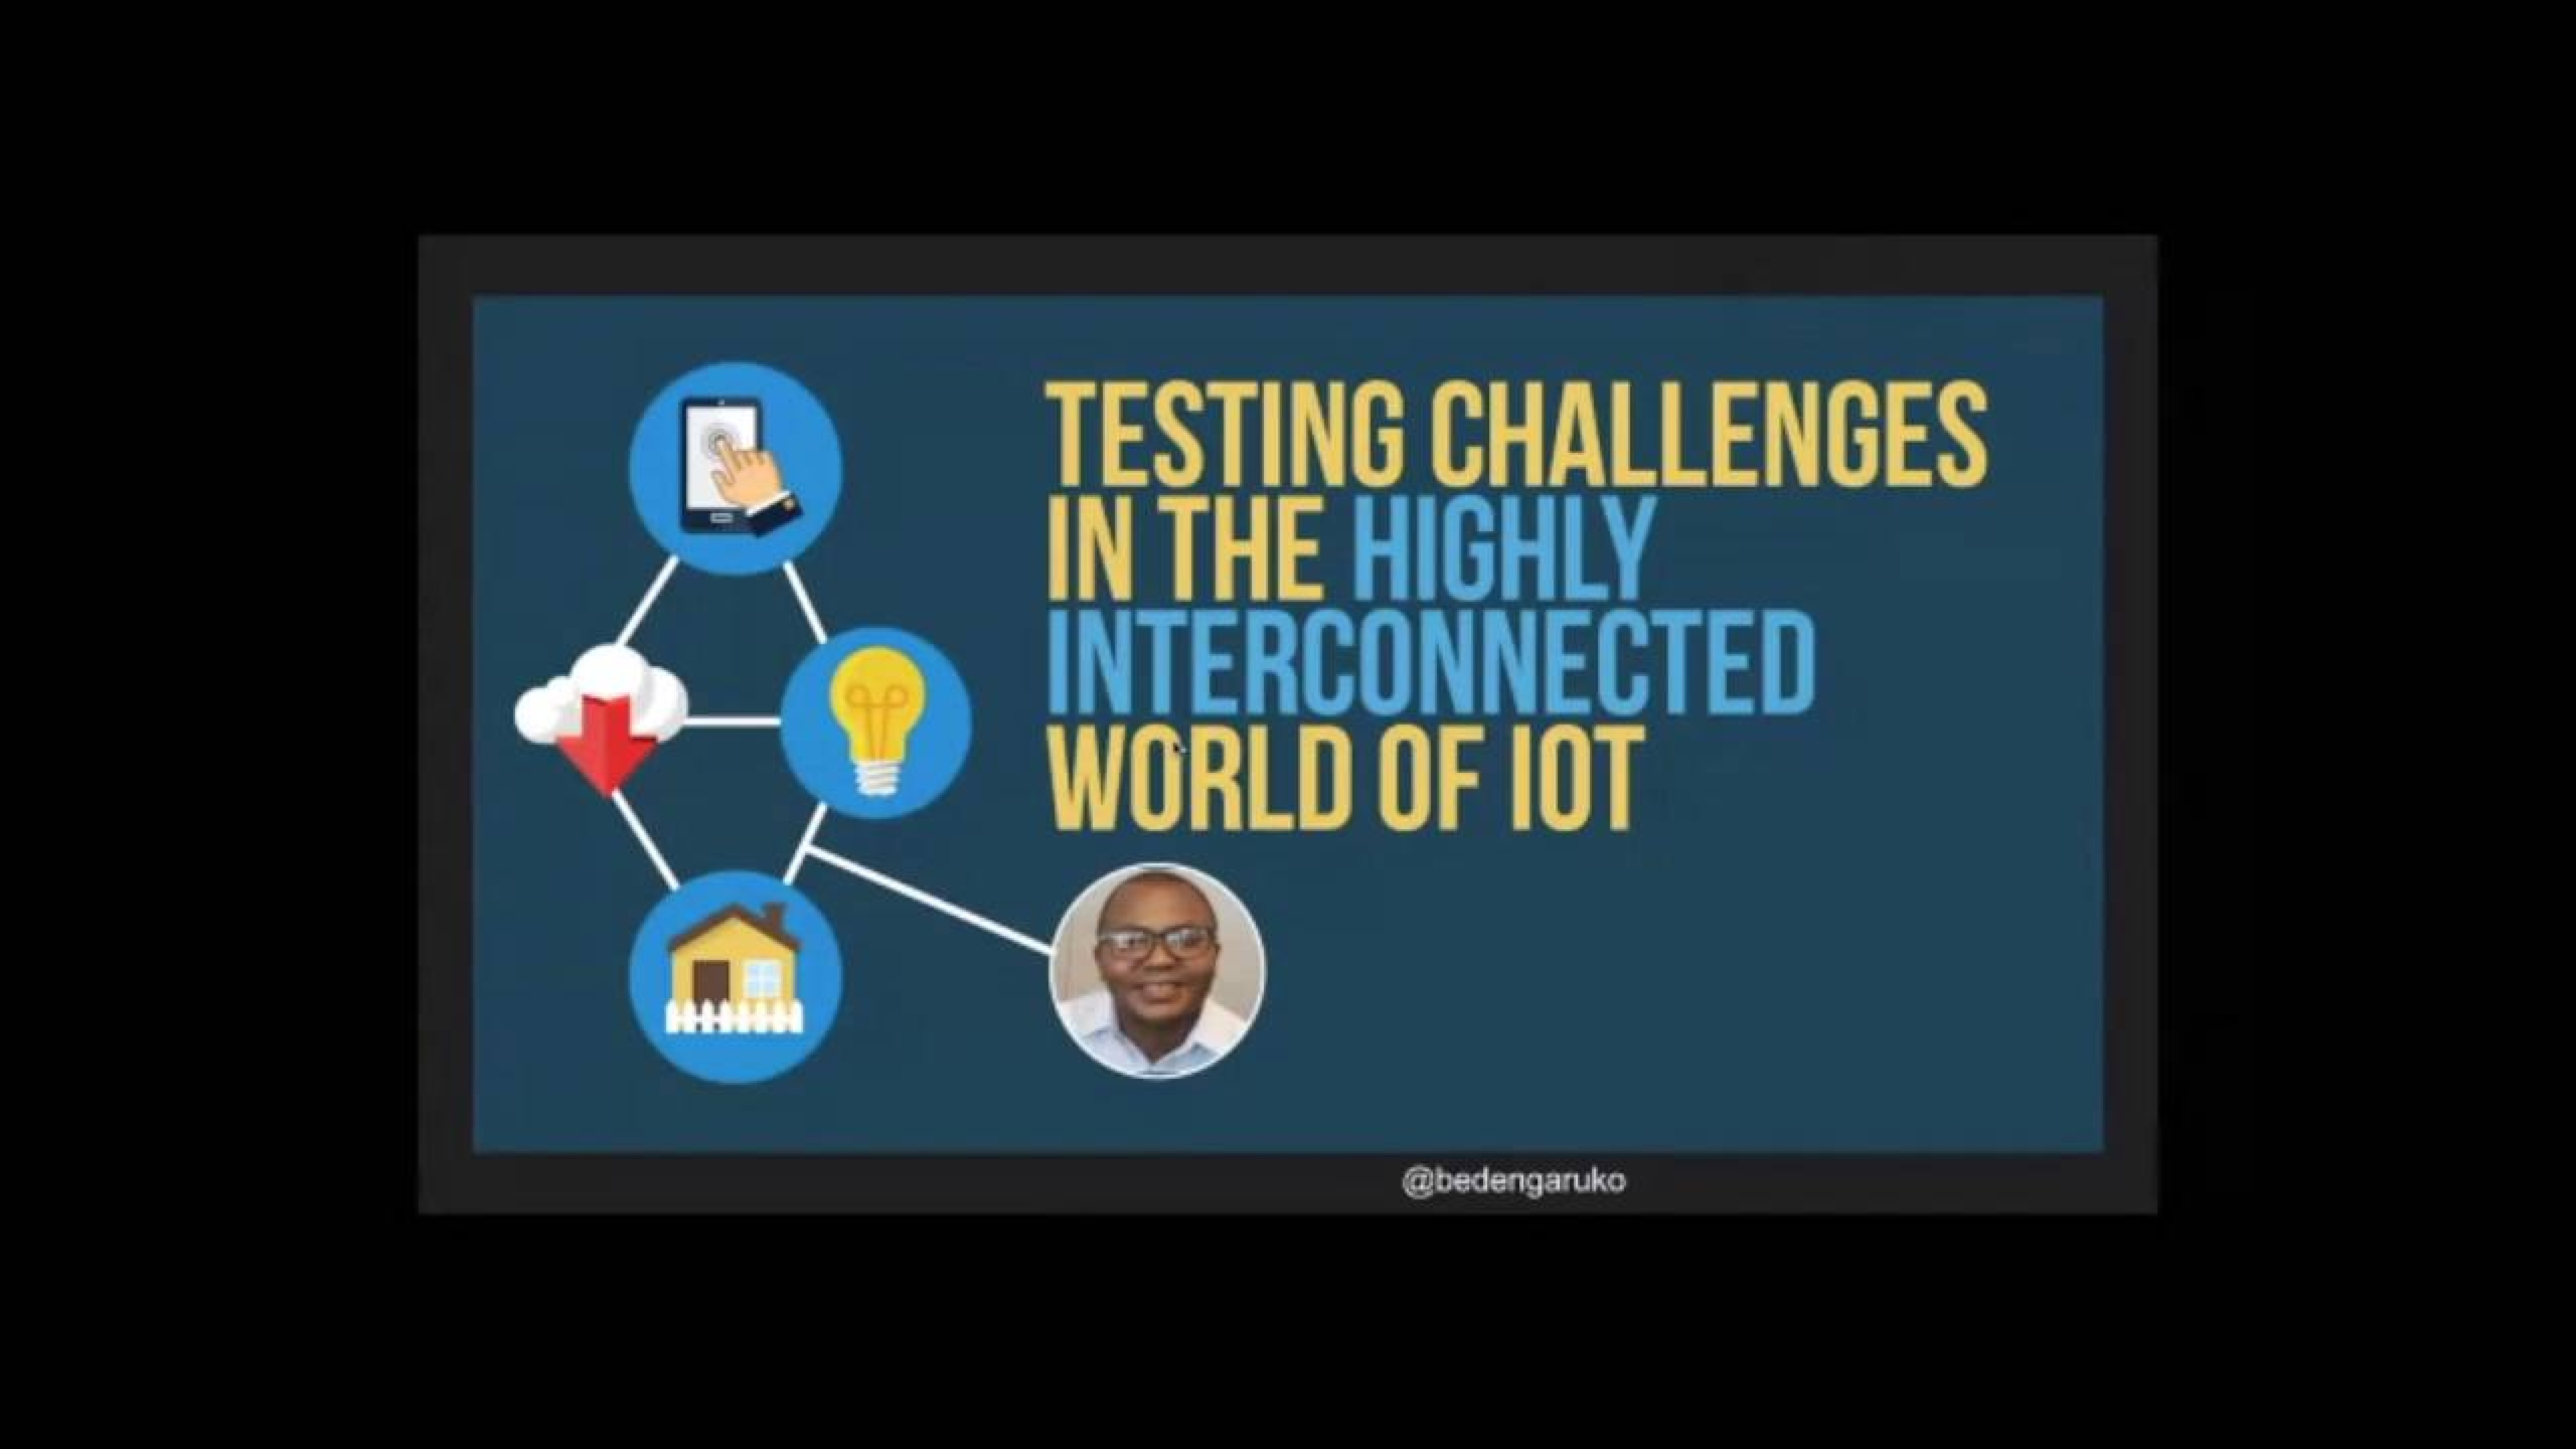 Testing Challenges in the Highly Interconnected World of IoT with Bede Ngaruko